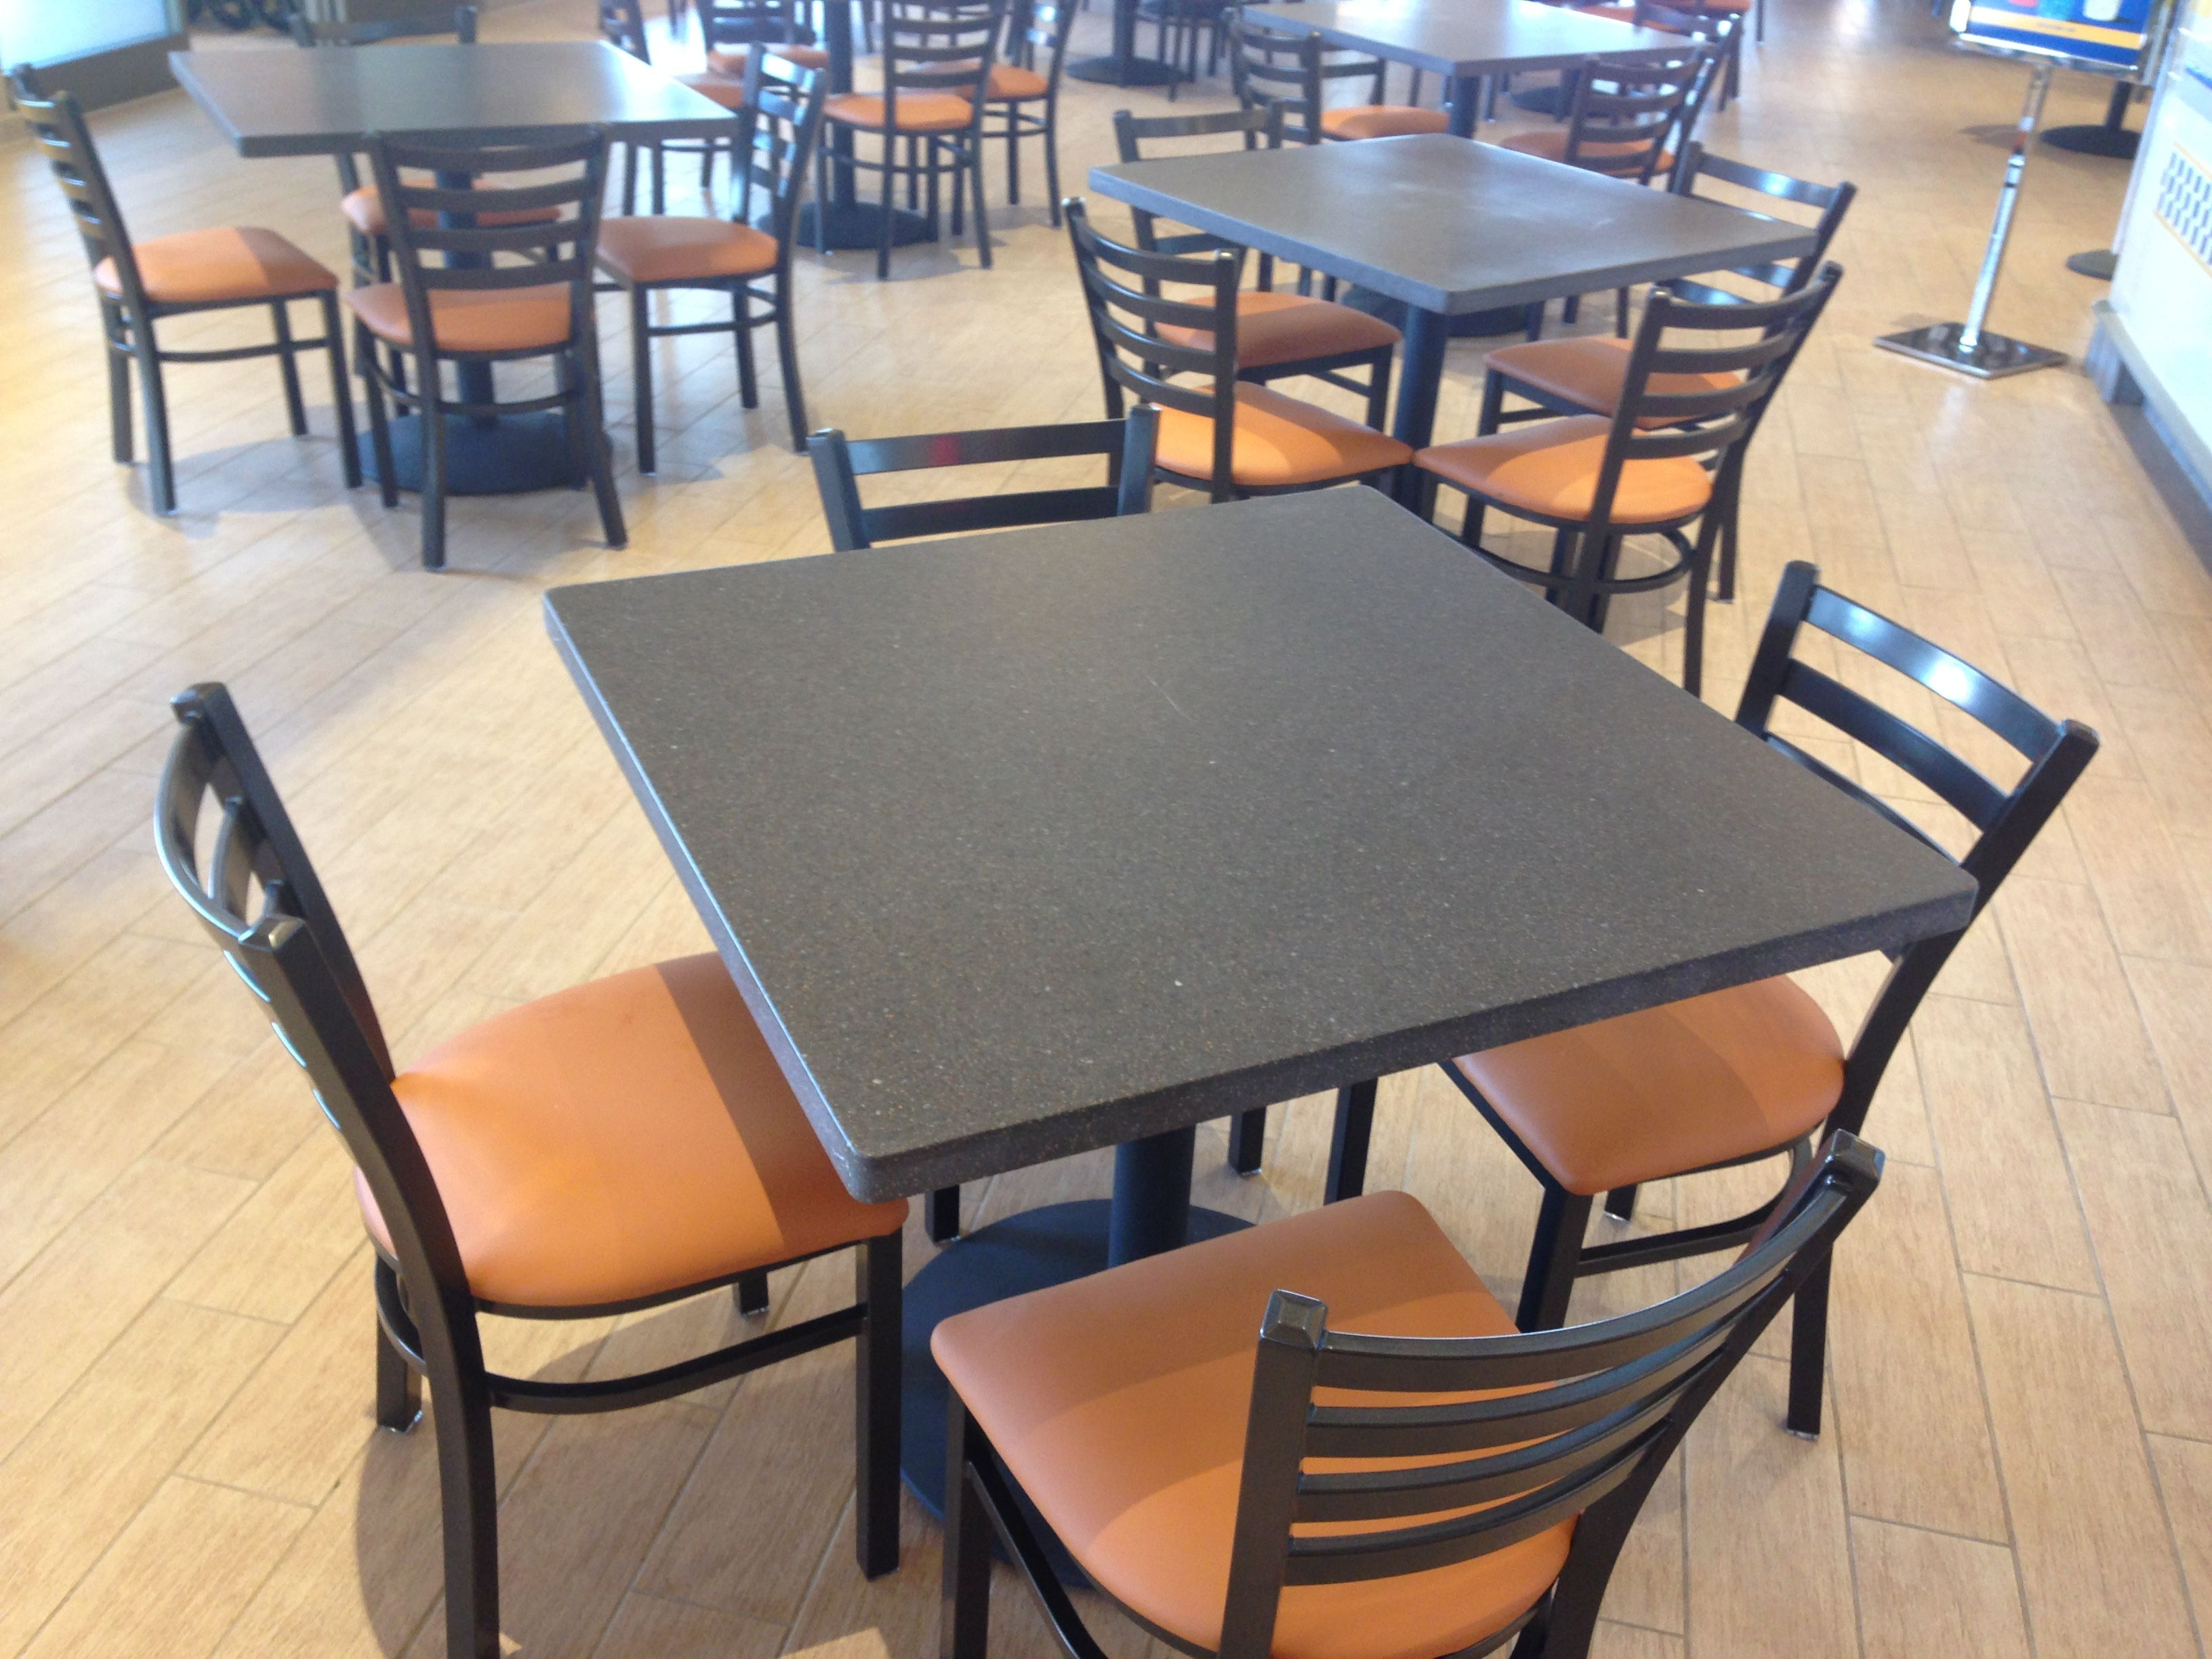 New Tables And Chairs Are Installed In The Food Court